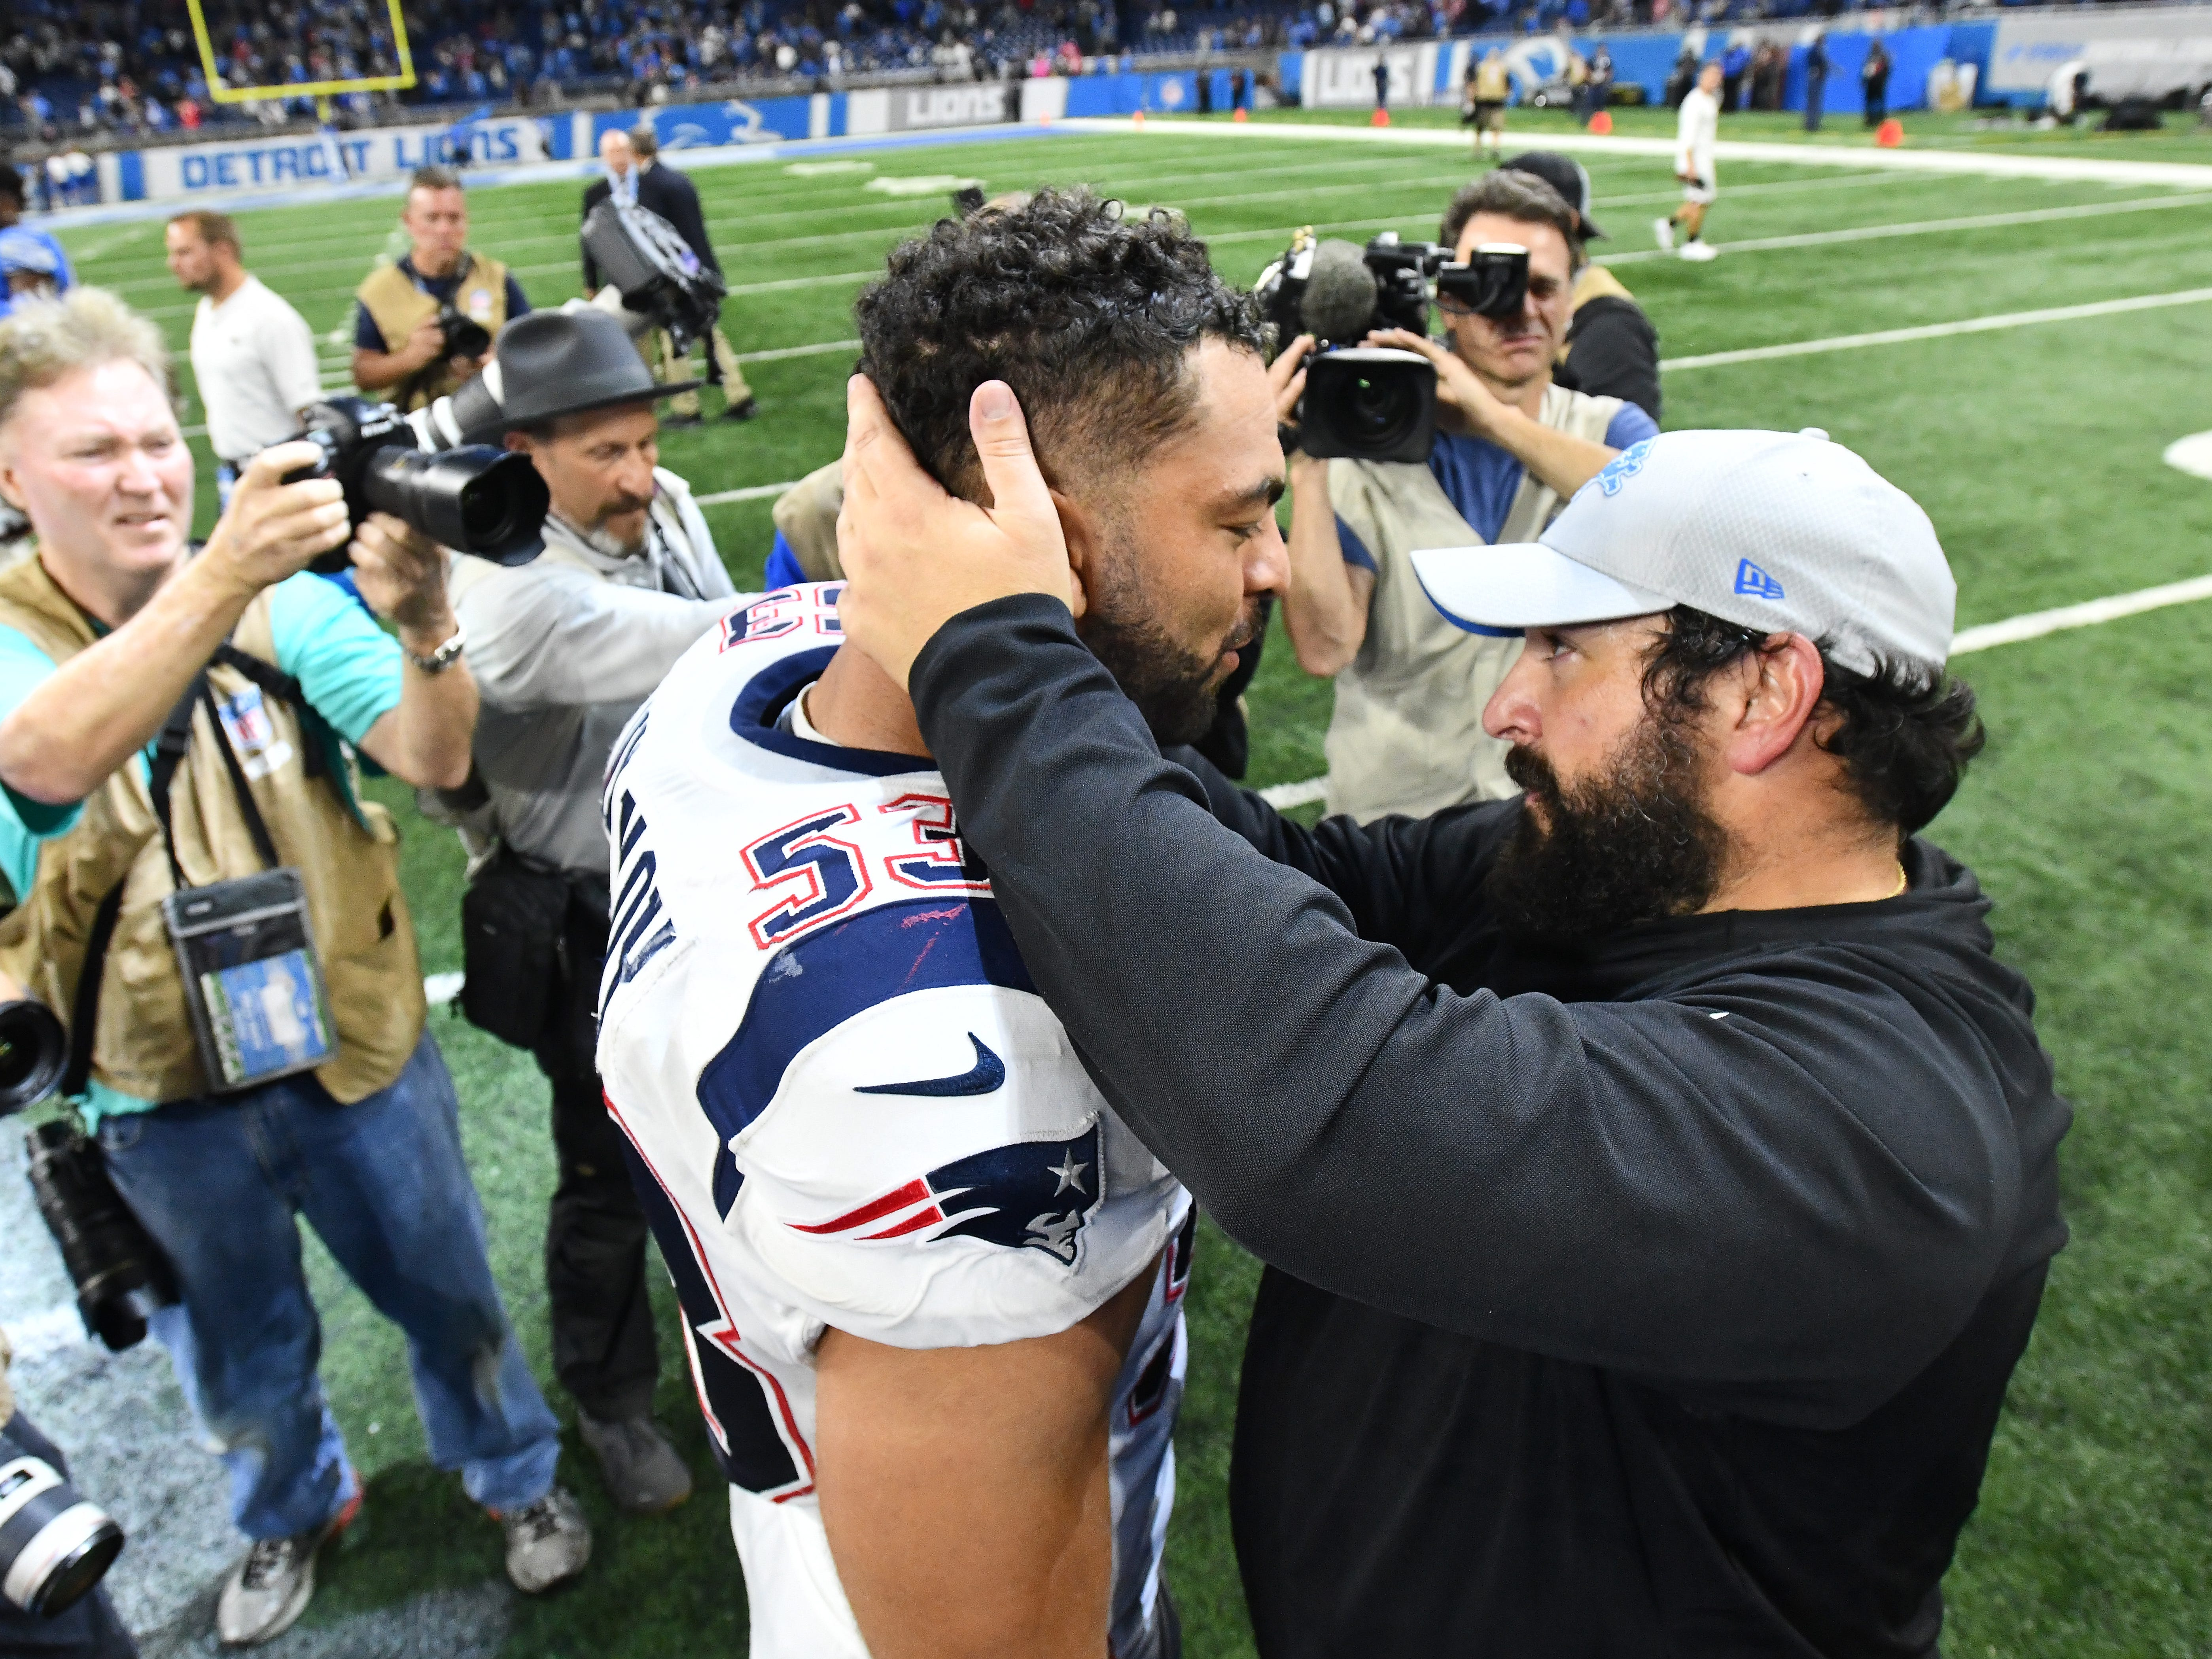 Former Detroit Lions Kyle Van Noy hugs his former New England Coach, now head coach with the Lions, Matt Patricia after the Detroit victory.